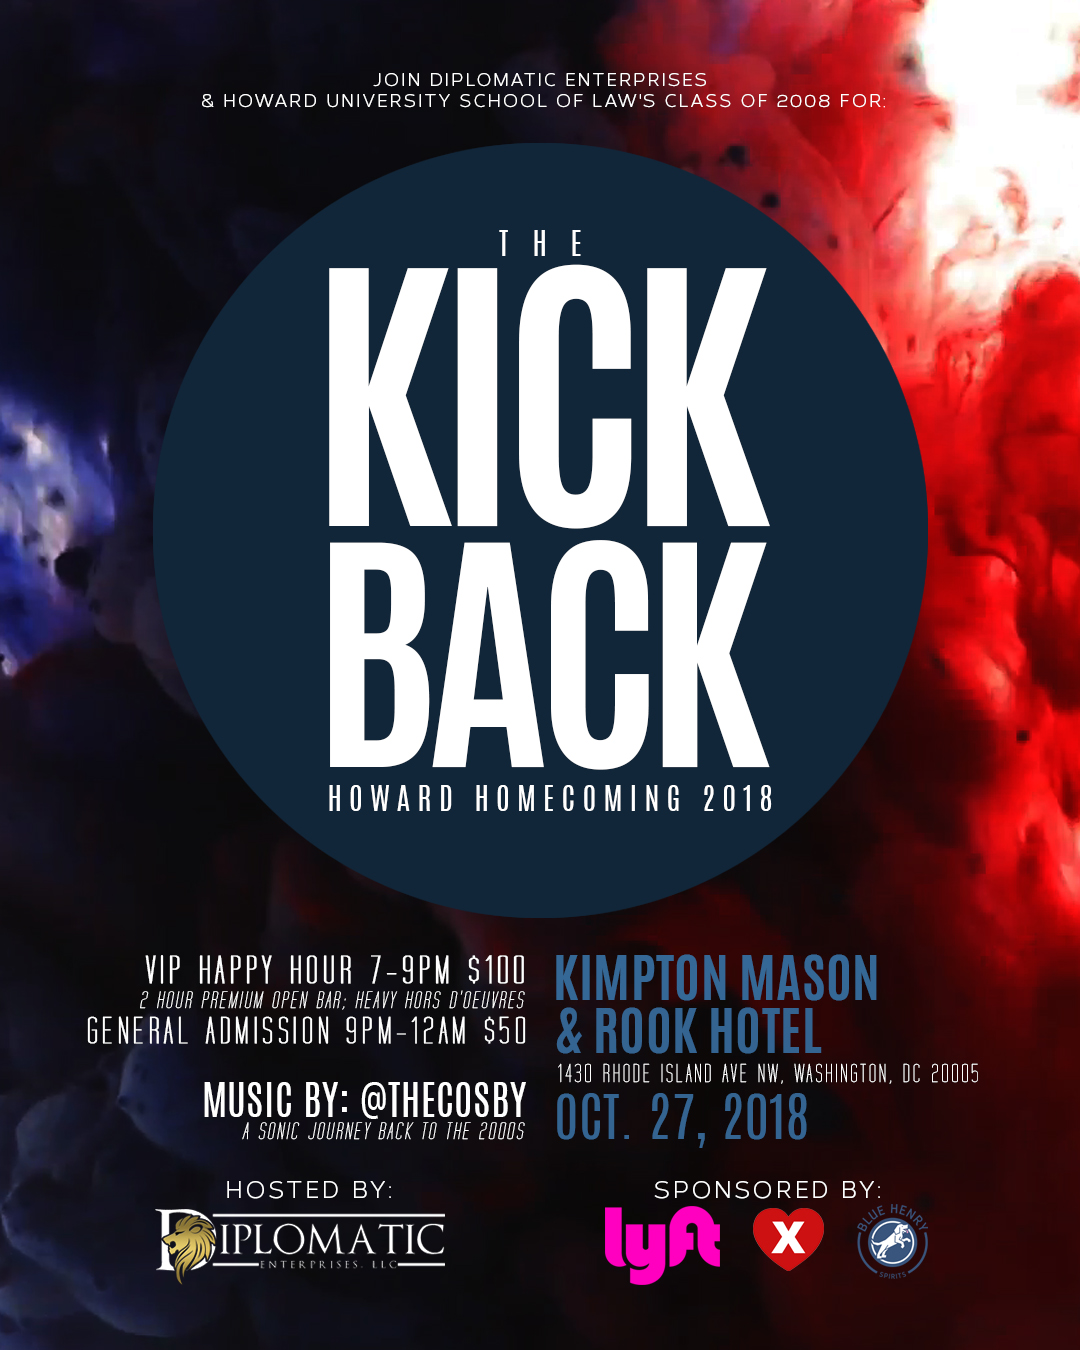 HU Homecoming 2018: The Kickback